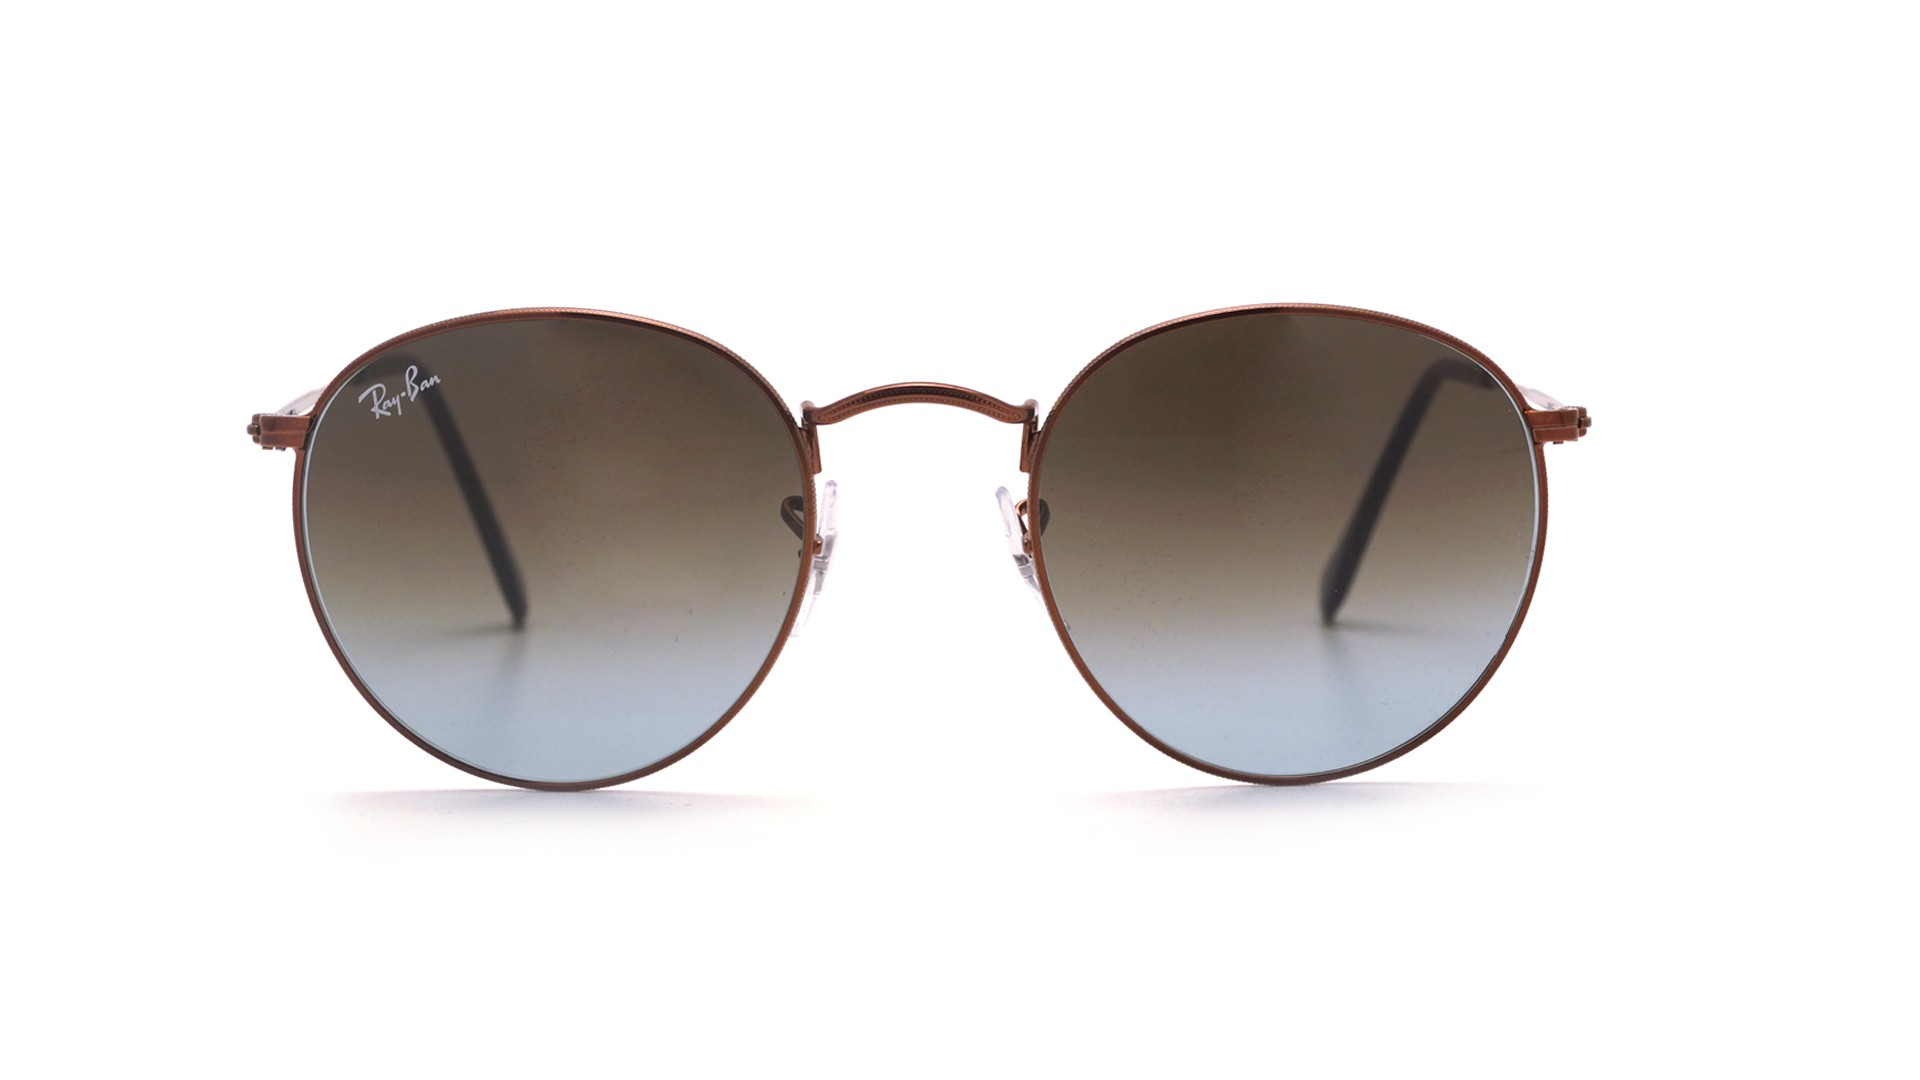 acd9b9bc1f ... best price sunglasses ray ban round metal brown rb3447 9003 96 50 21  medium gradient 6bb73 ...